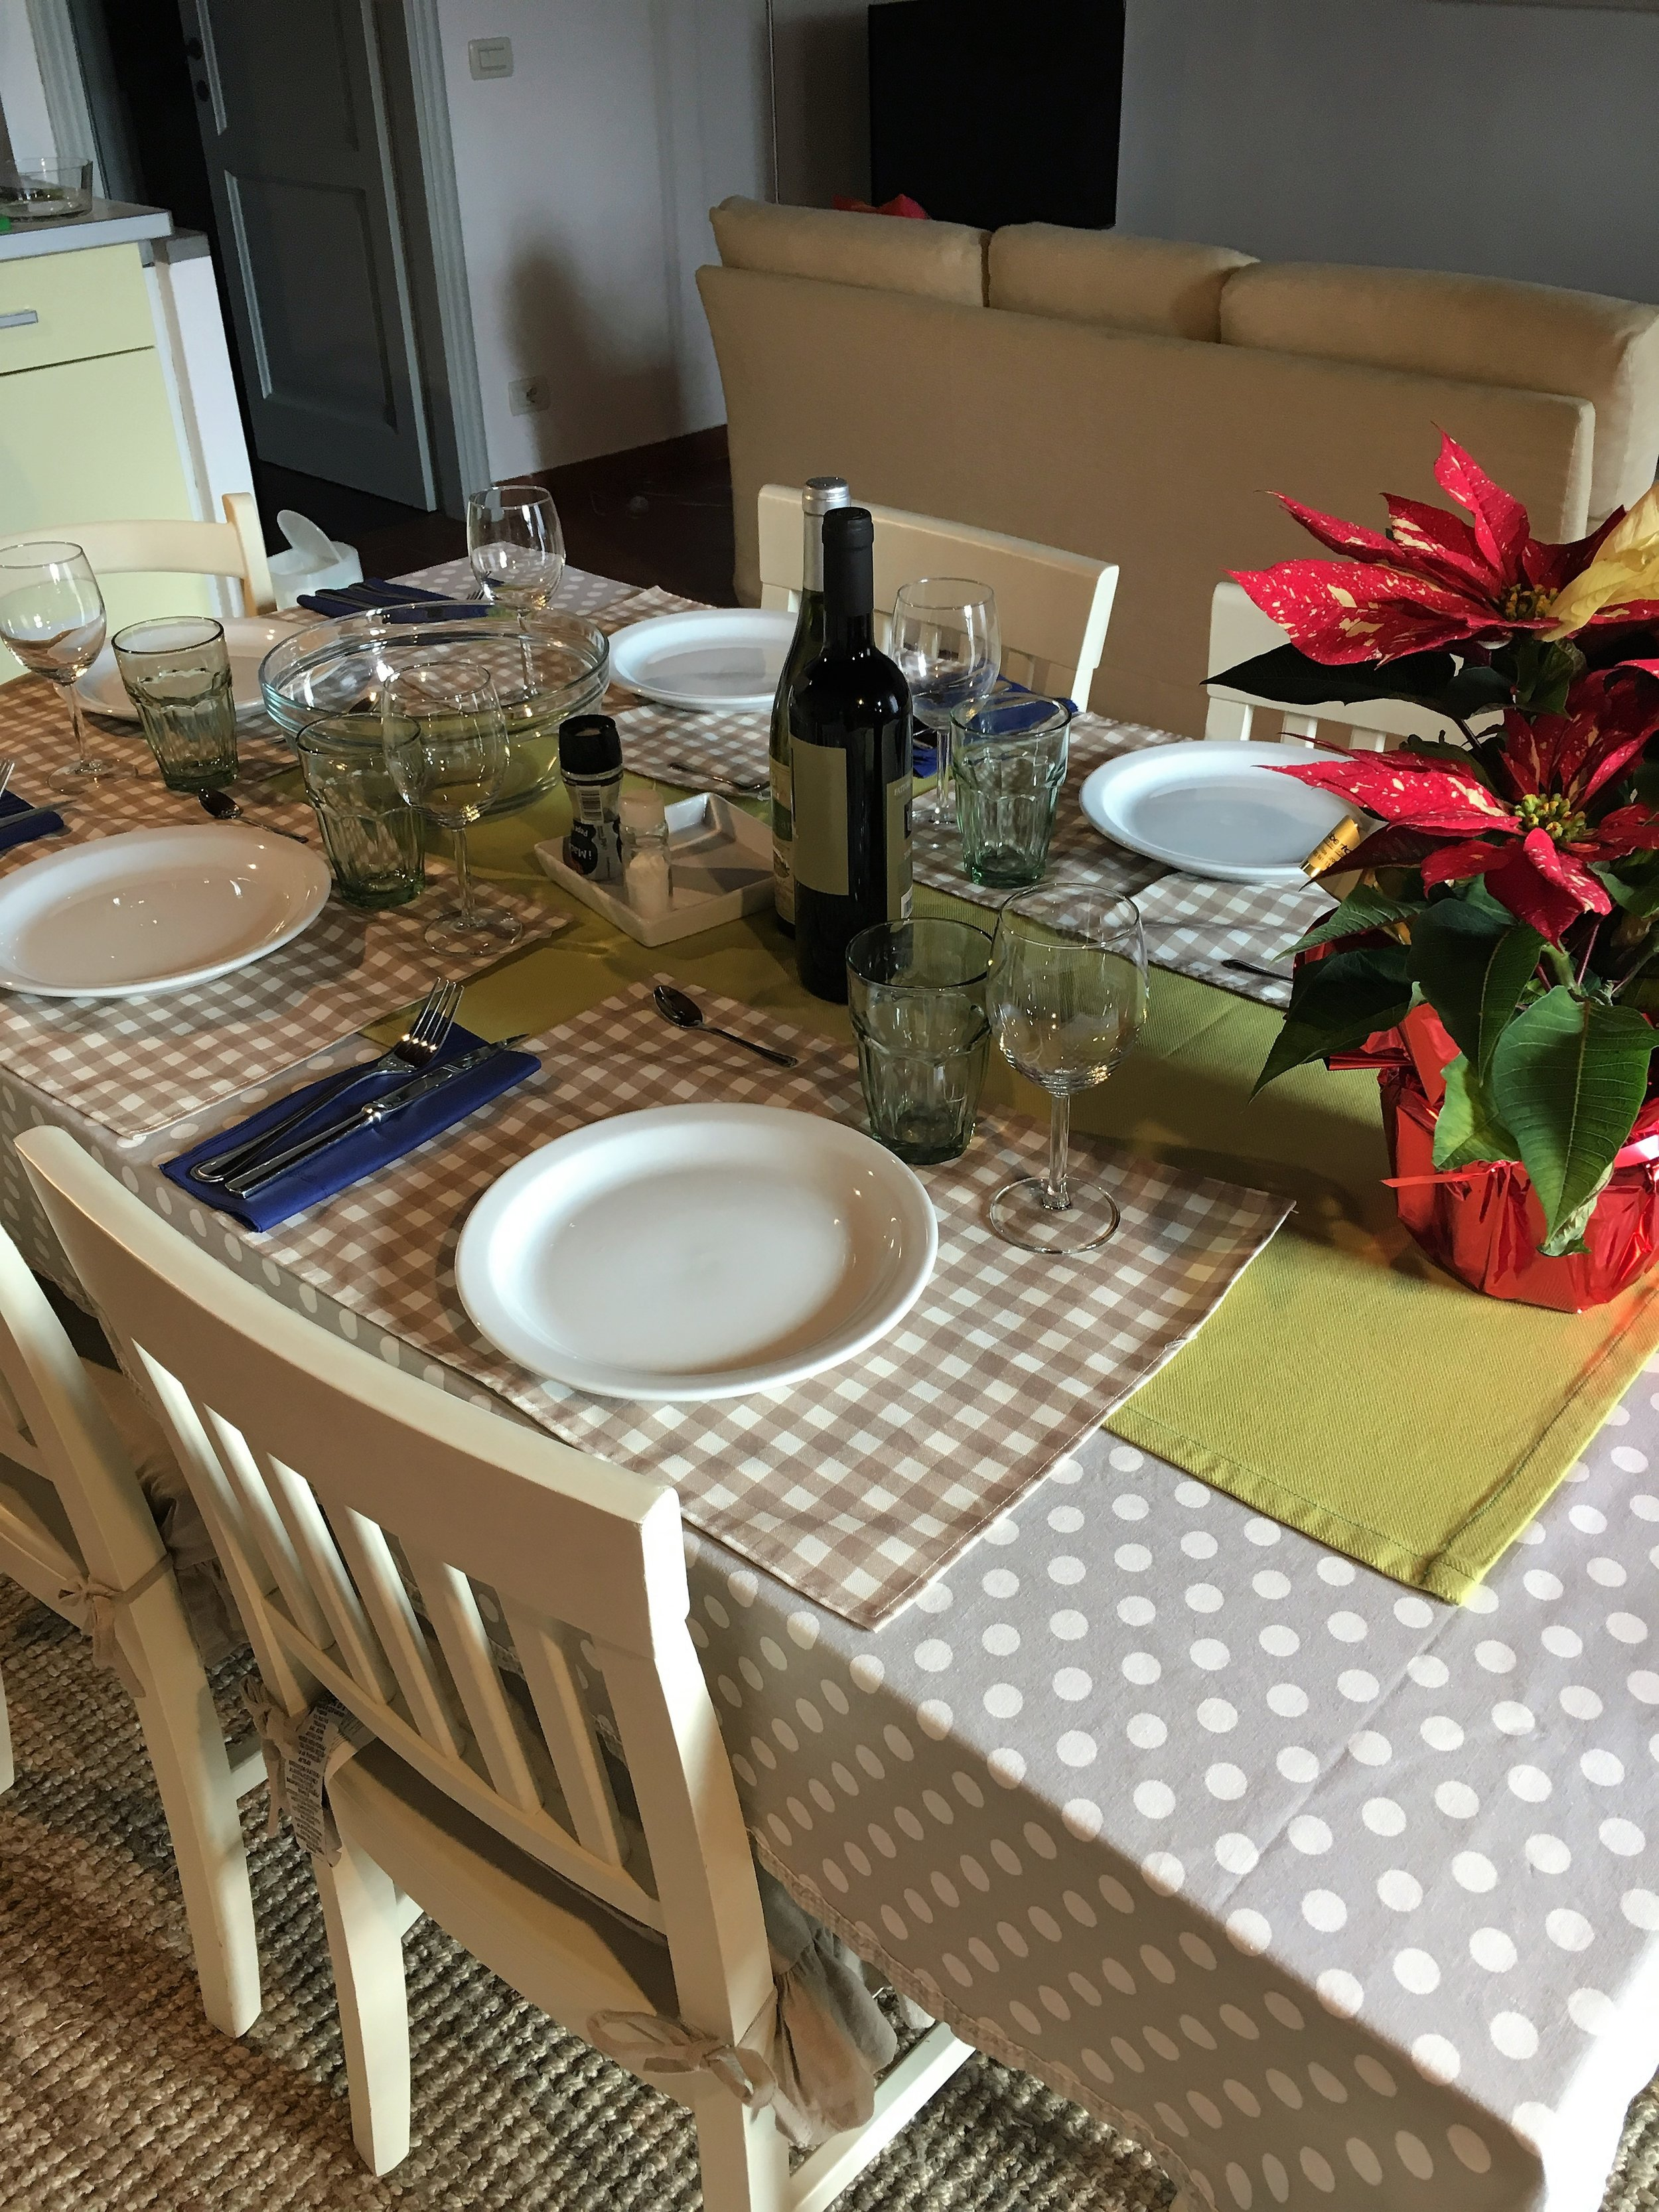 The table is set for pranzo with amici, Lucca, January 2017.